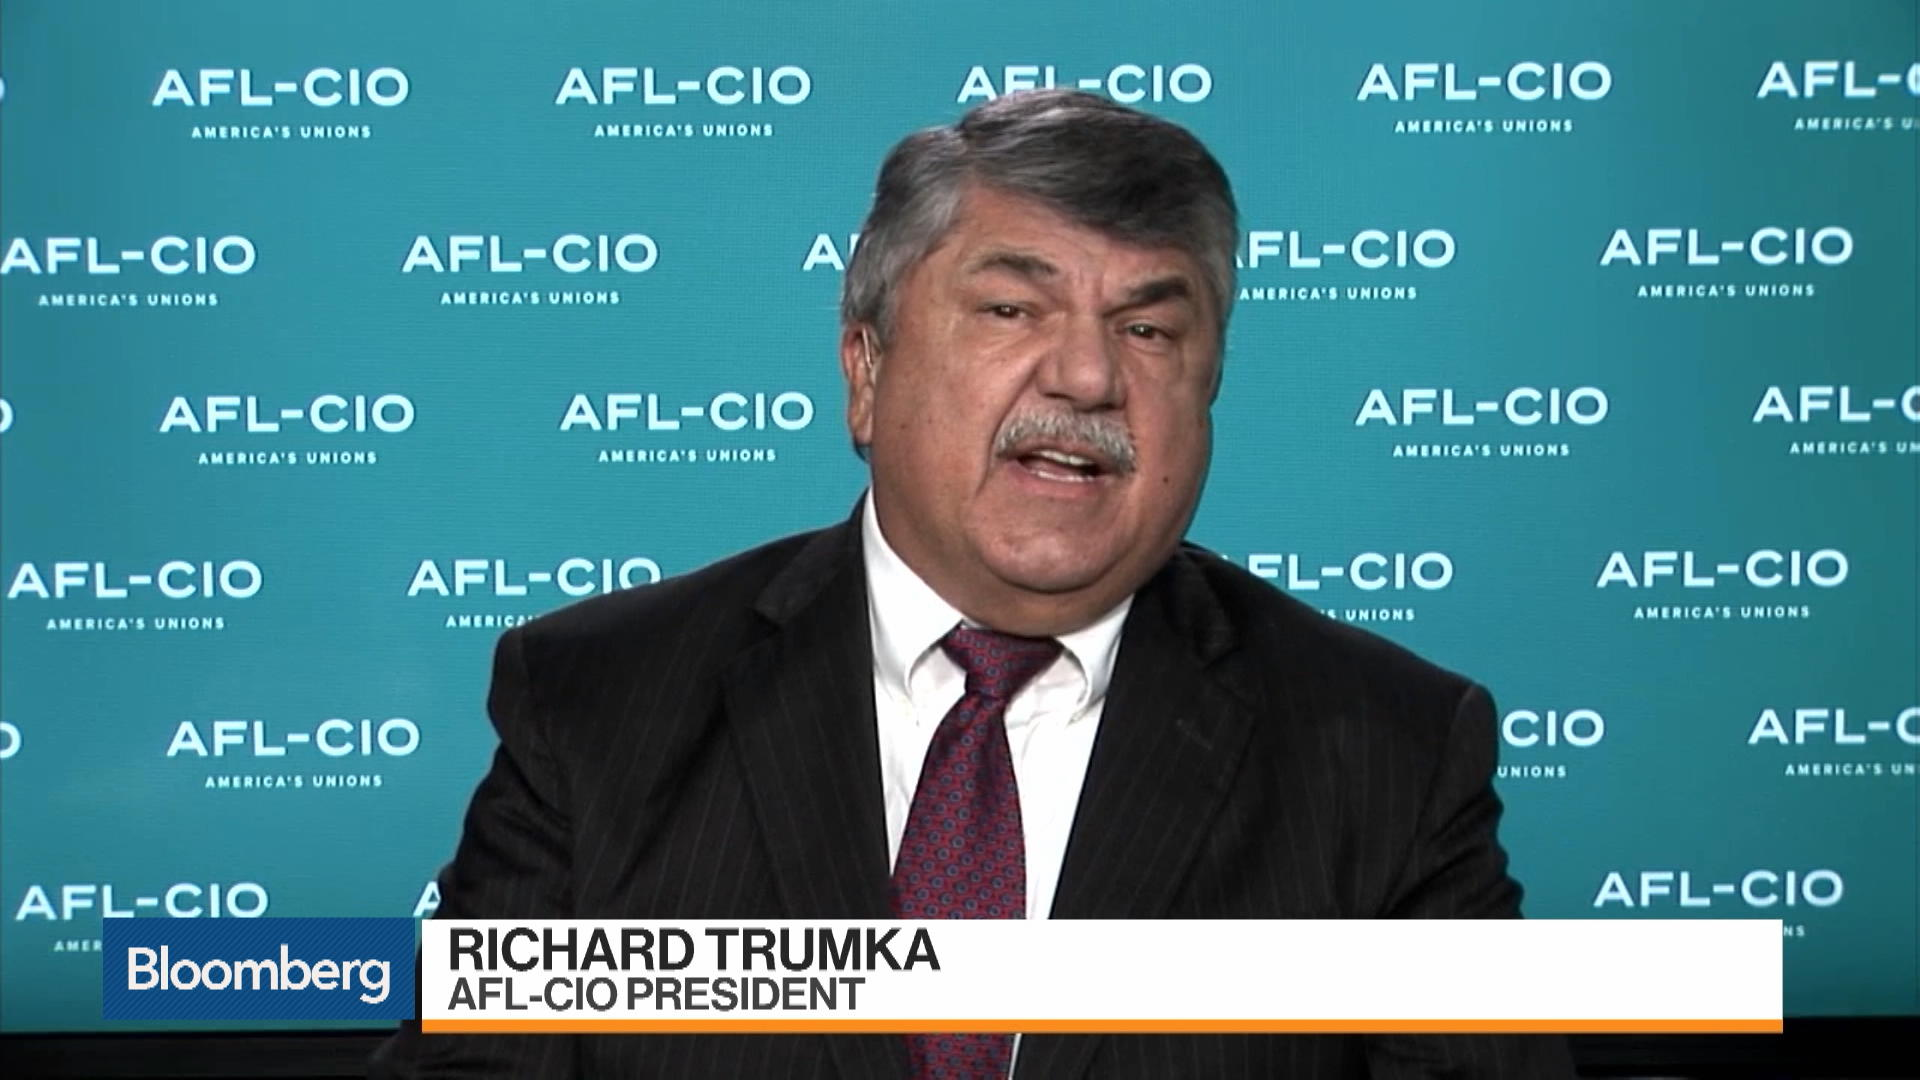 USMCA Is Totally Unenforceable, AFL-CIO President Trumka Says